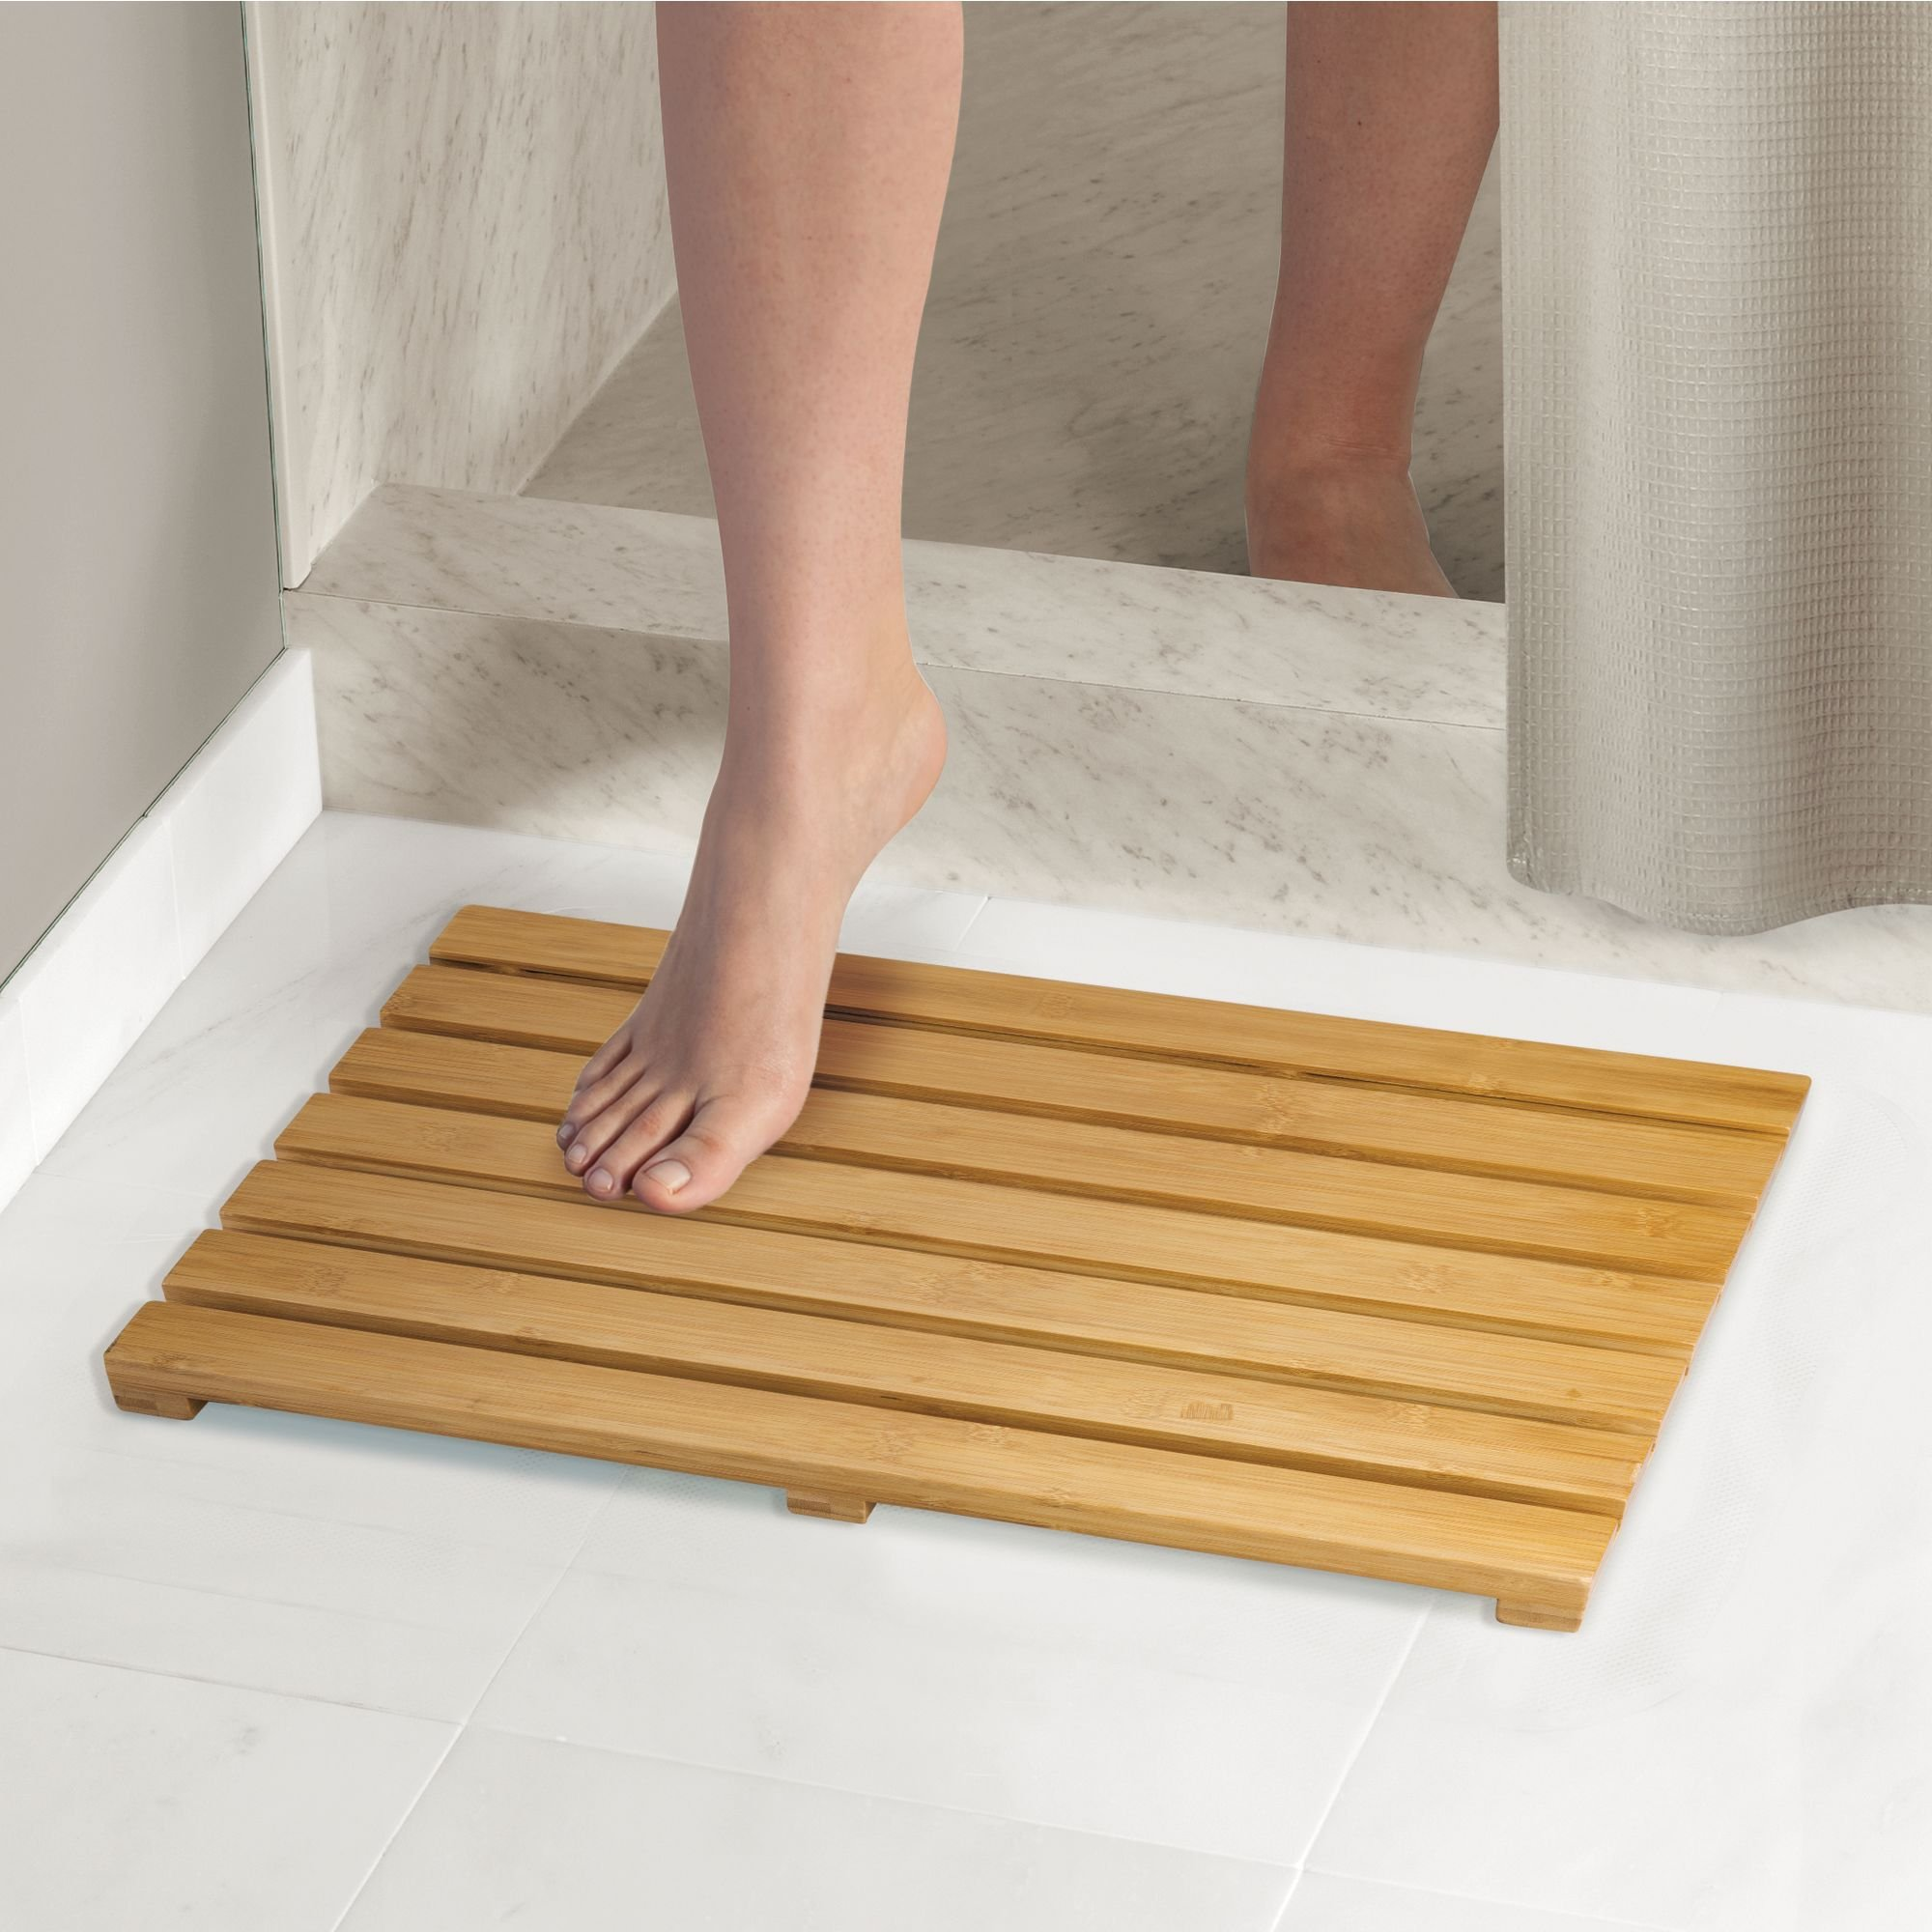 mDesign Natural Bamboo Non-Slip Rectangular Spa Bath Mat - for Bathroom Showers, Bathtubs, Floors - Slatted Design, Eco-Friendly - Indoor and Outdoor use - 100% Bamboo Wood, Natural Light Wood by mDesign (Image #2)